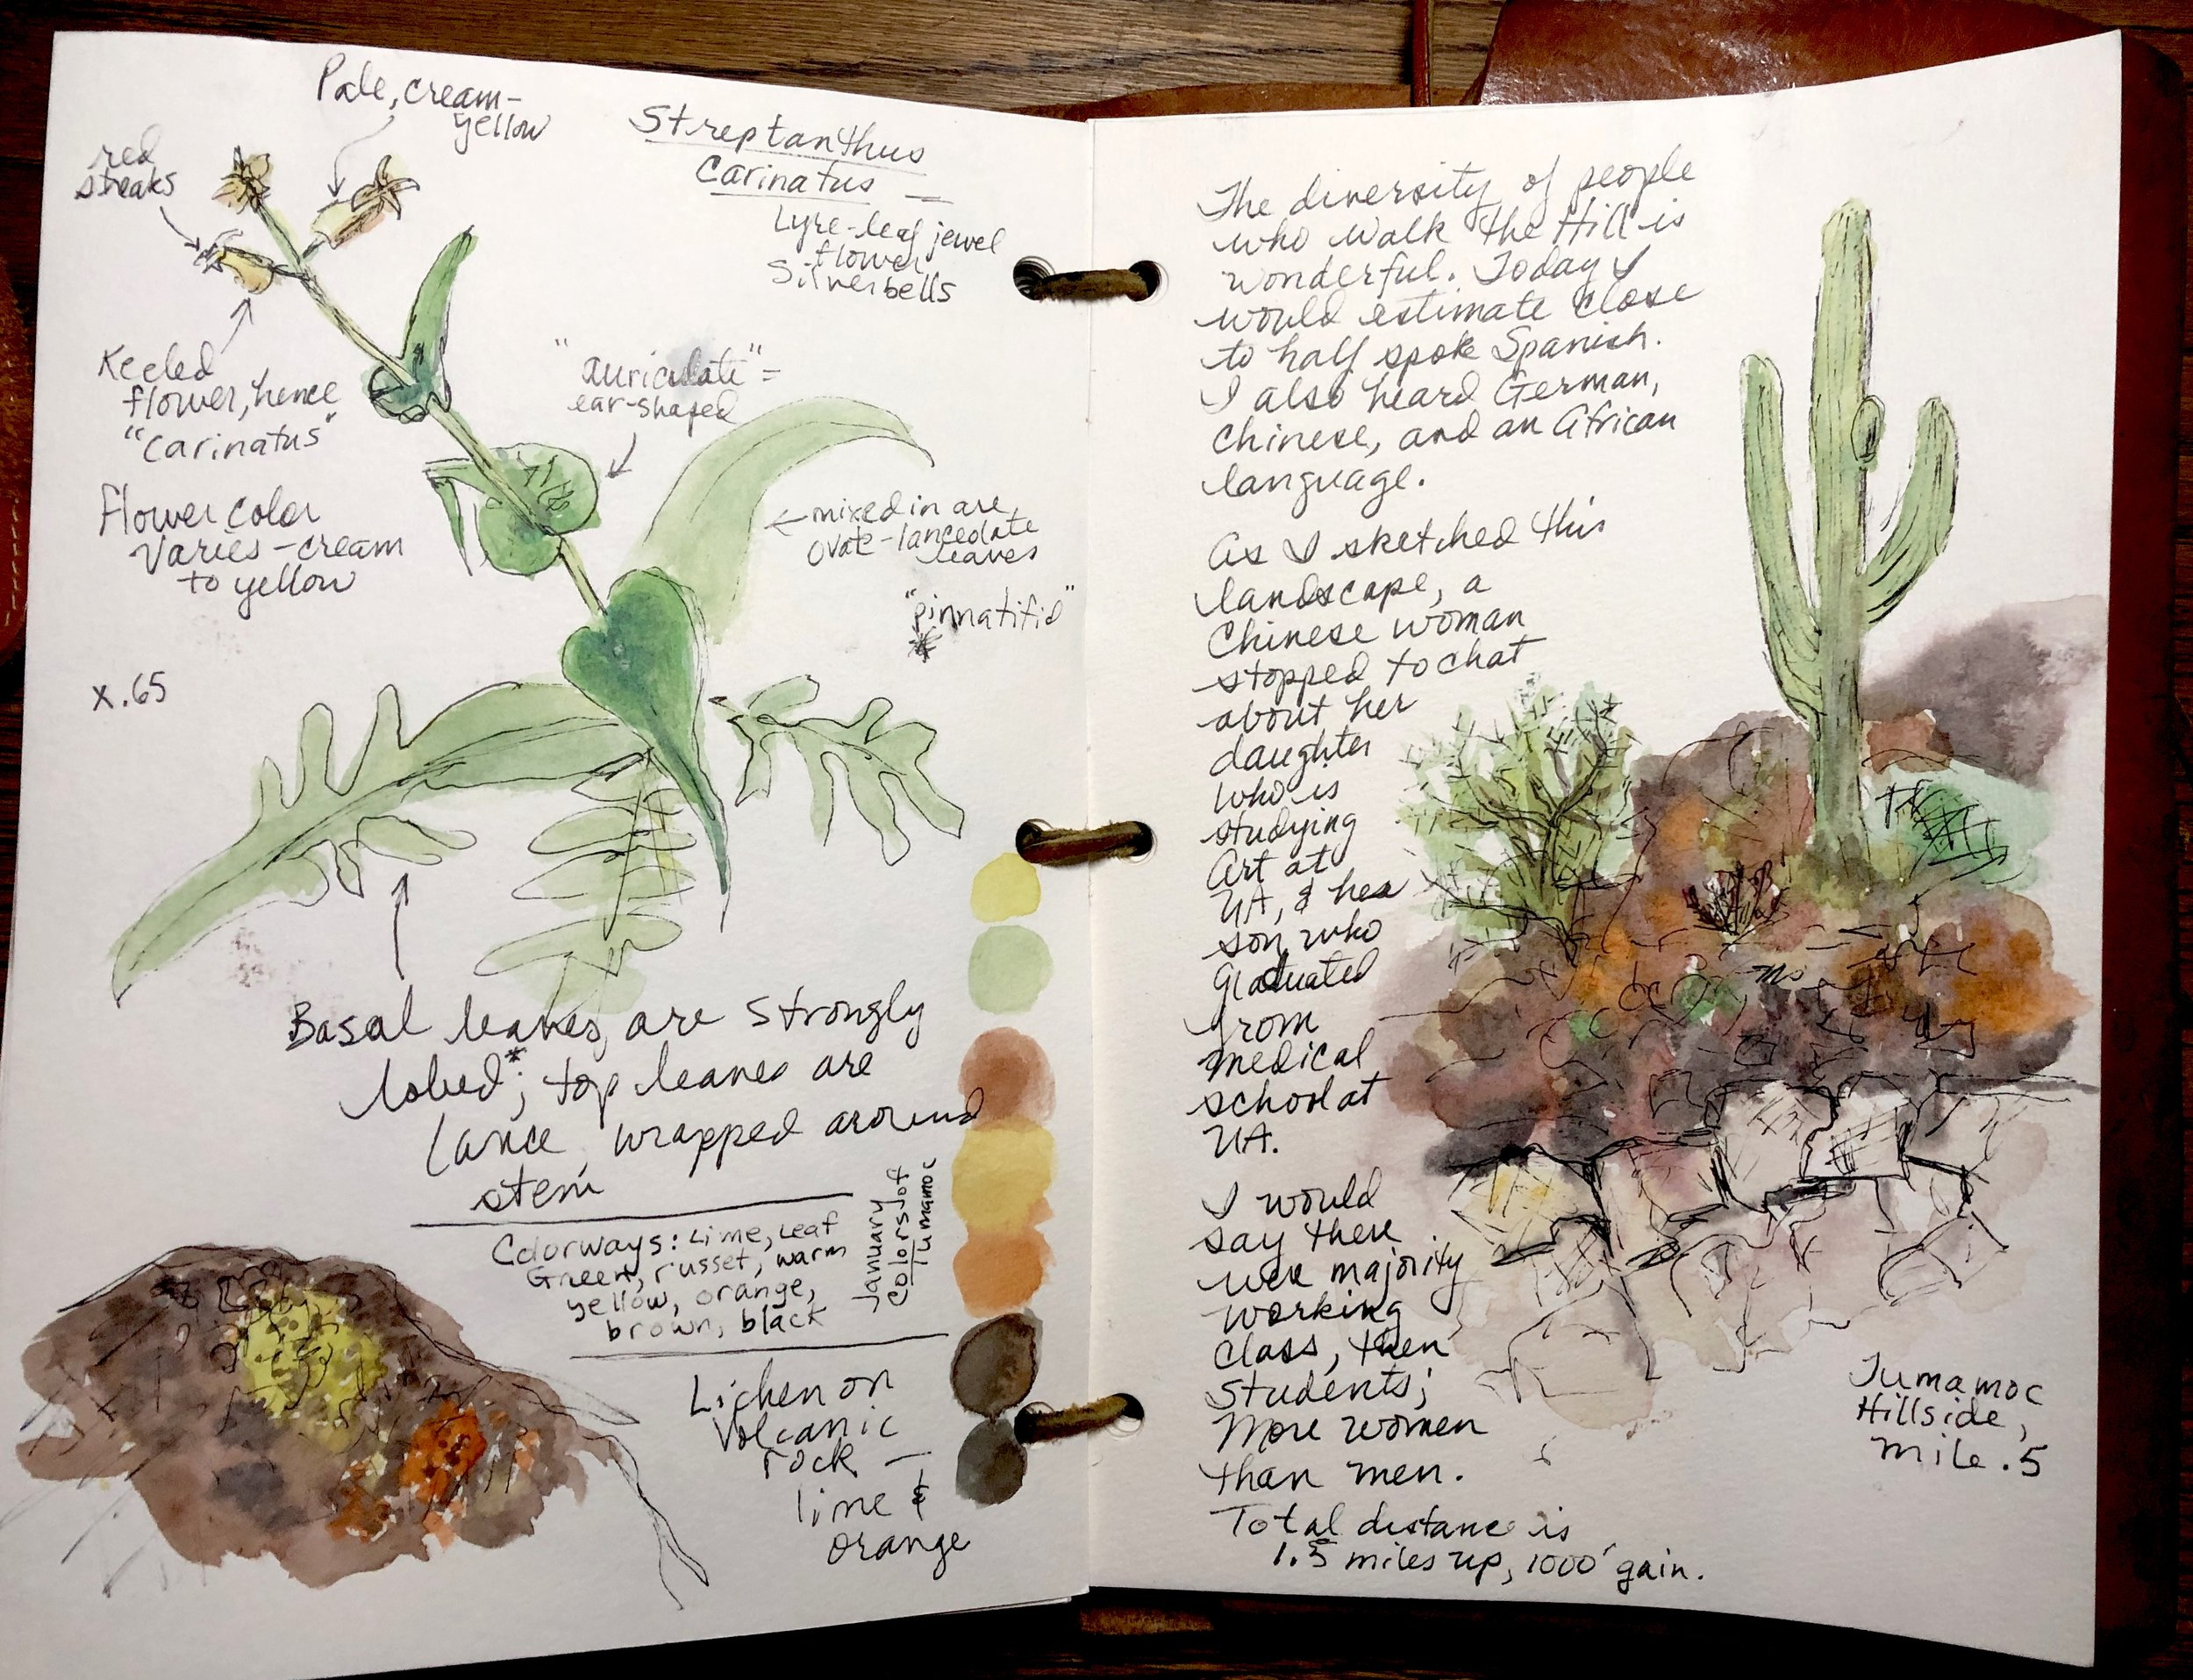 Journal spread done with the mini kit while walking up to the Desert Laboratory on Tumamoc Hill, Tucson, Arizona. The indanthrone blue + burnt sienna + purple ochre create the interest rock colors and textures quickly.